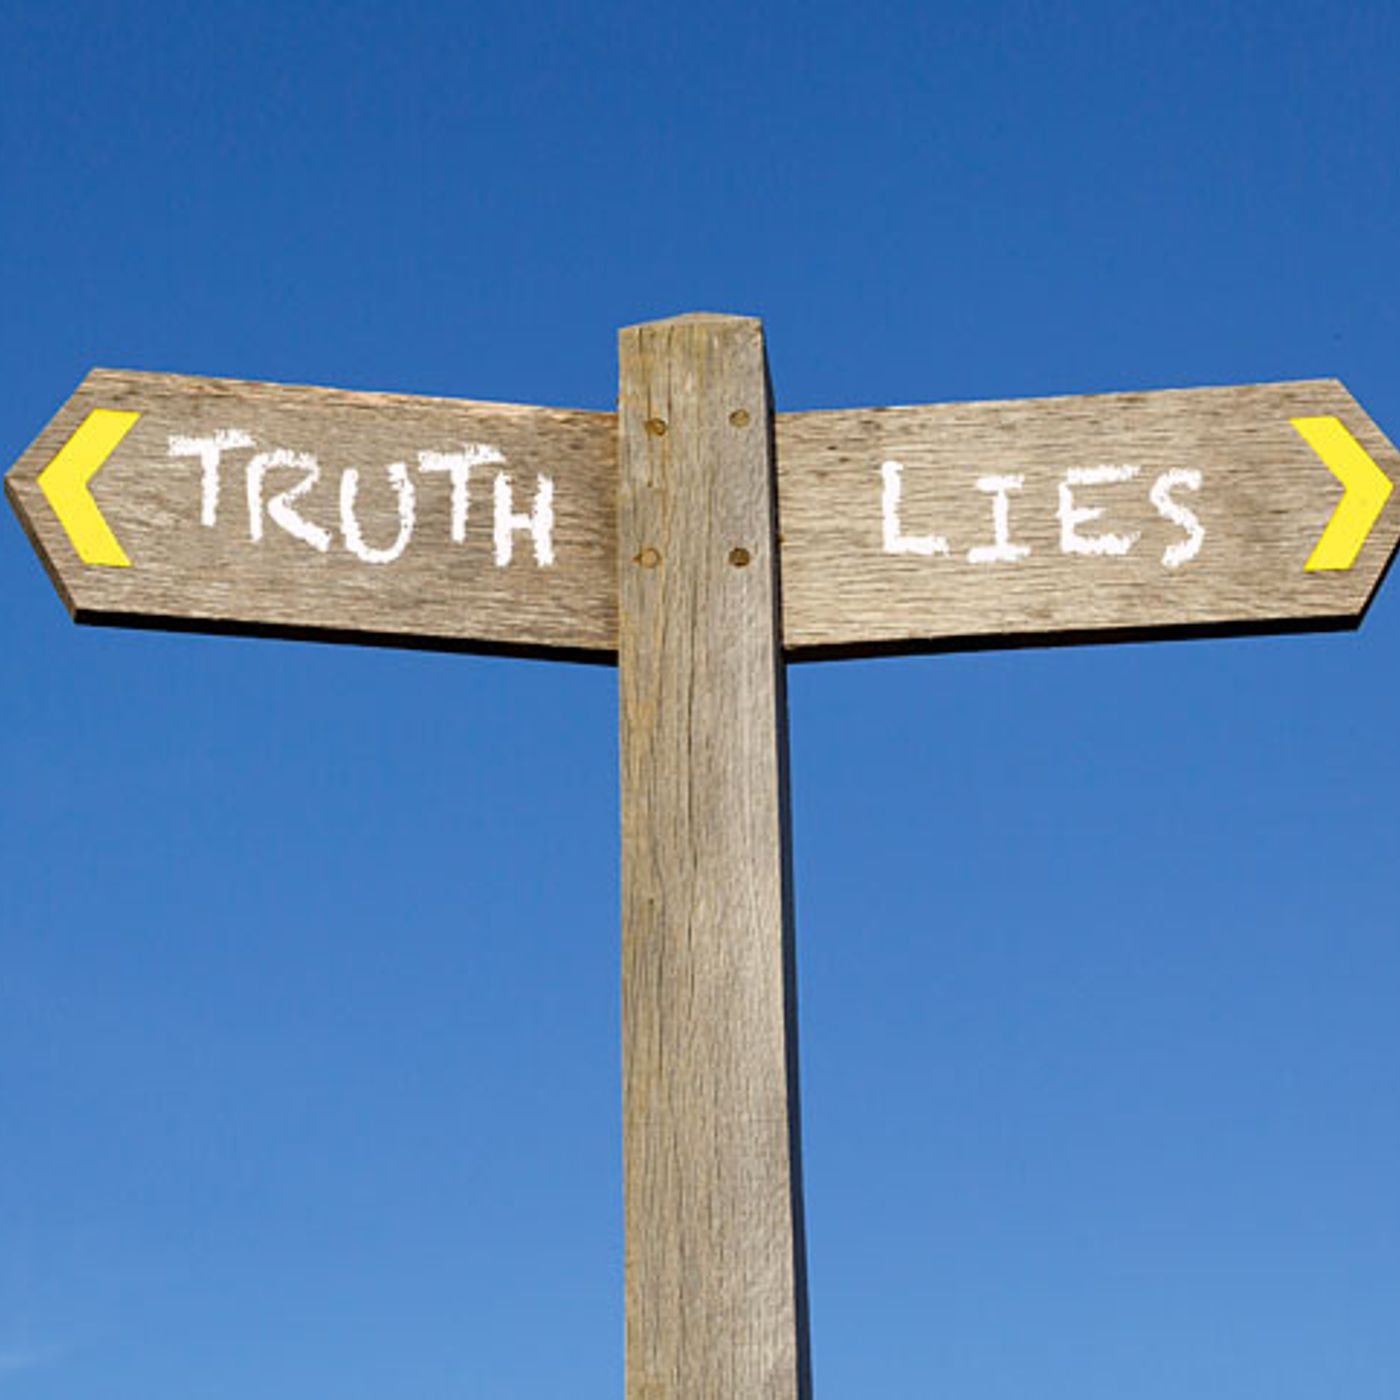 President Trump and the War on Truth